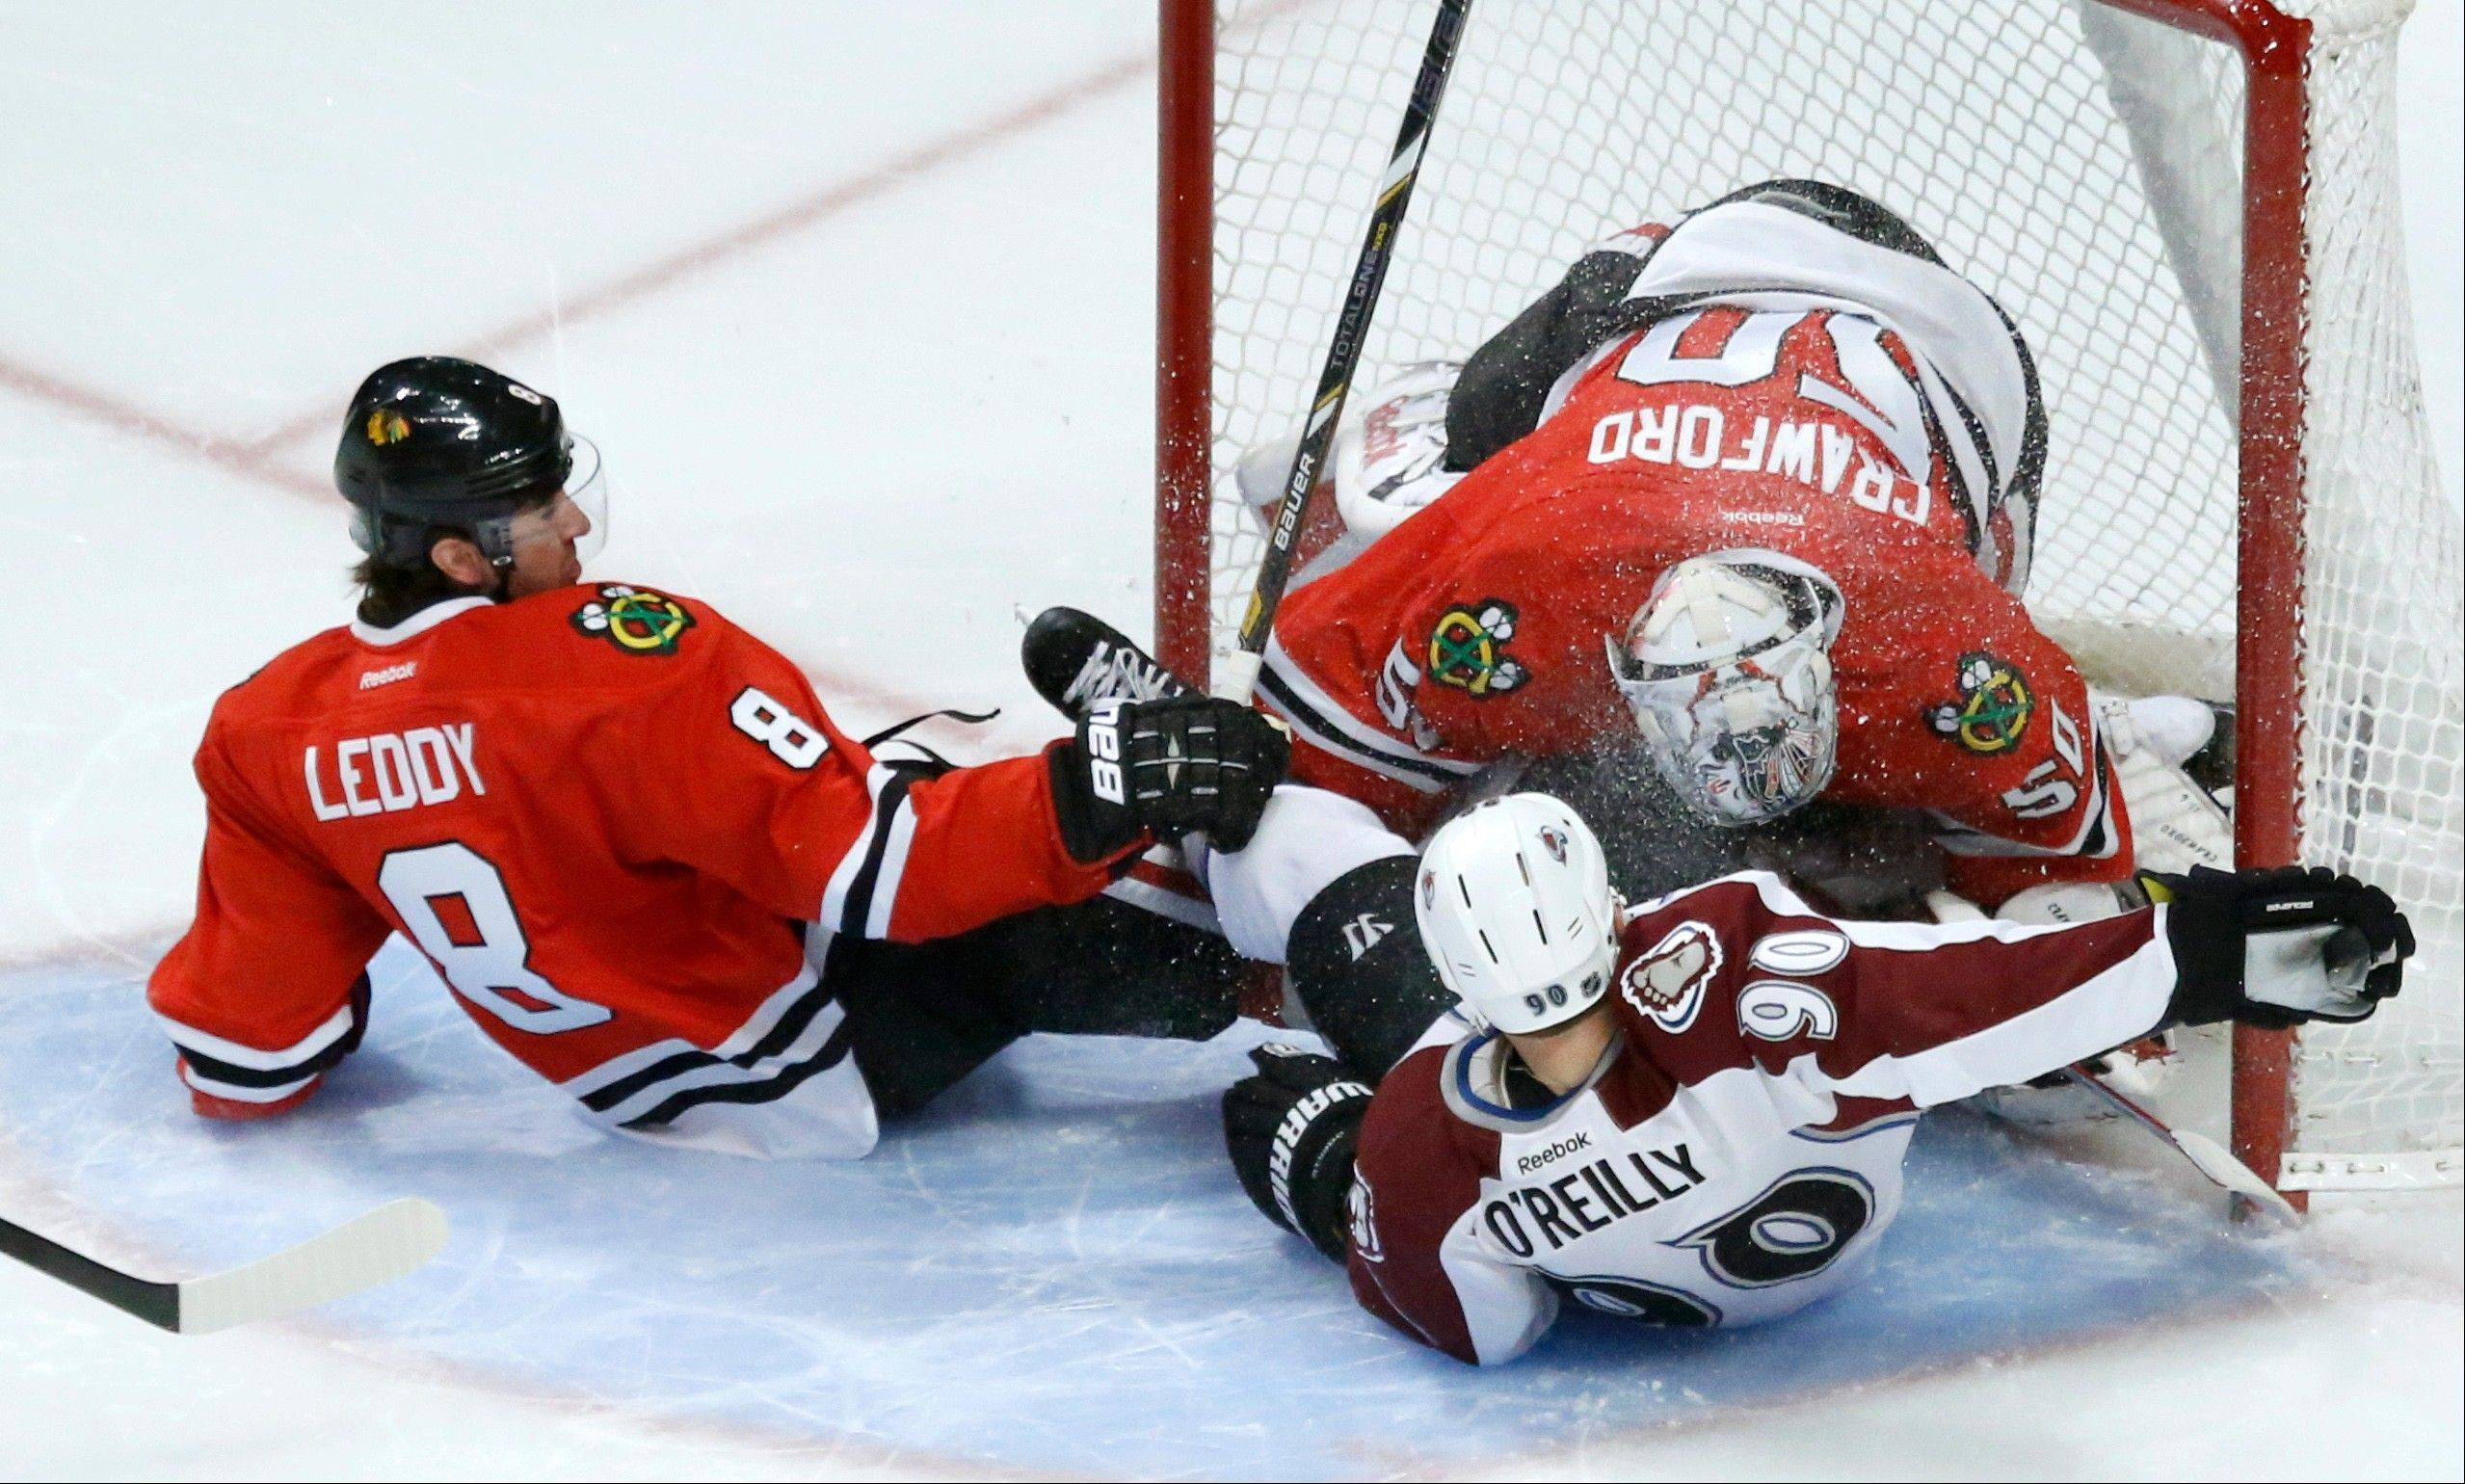 The Blackhawks' Nick Leddy (8) and Ryan O'Reilly of the Avalanche crash into goalie Corey Crawford during the first period Tuesday at the United Center.